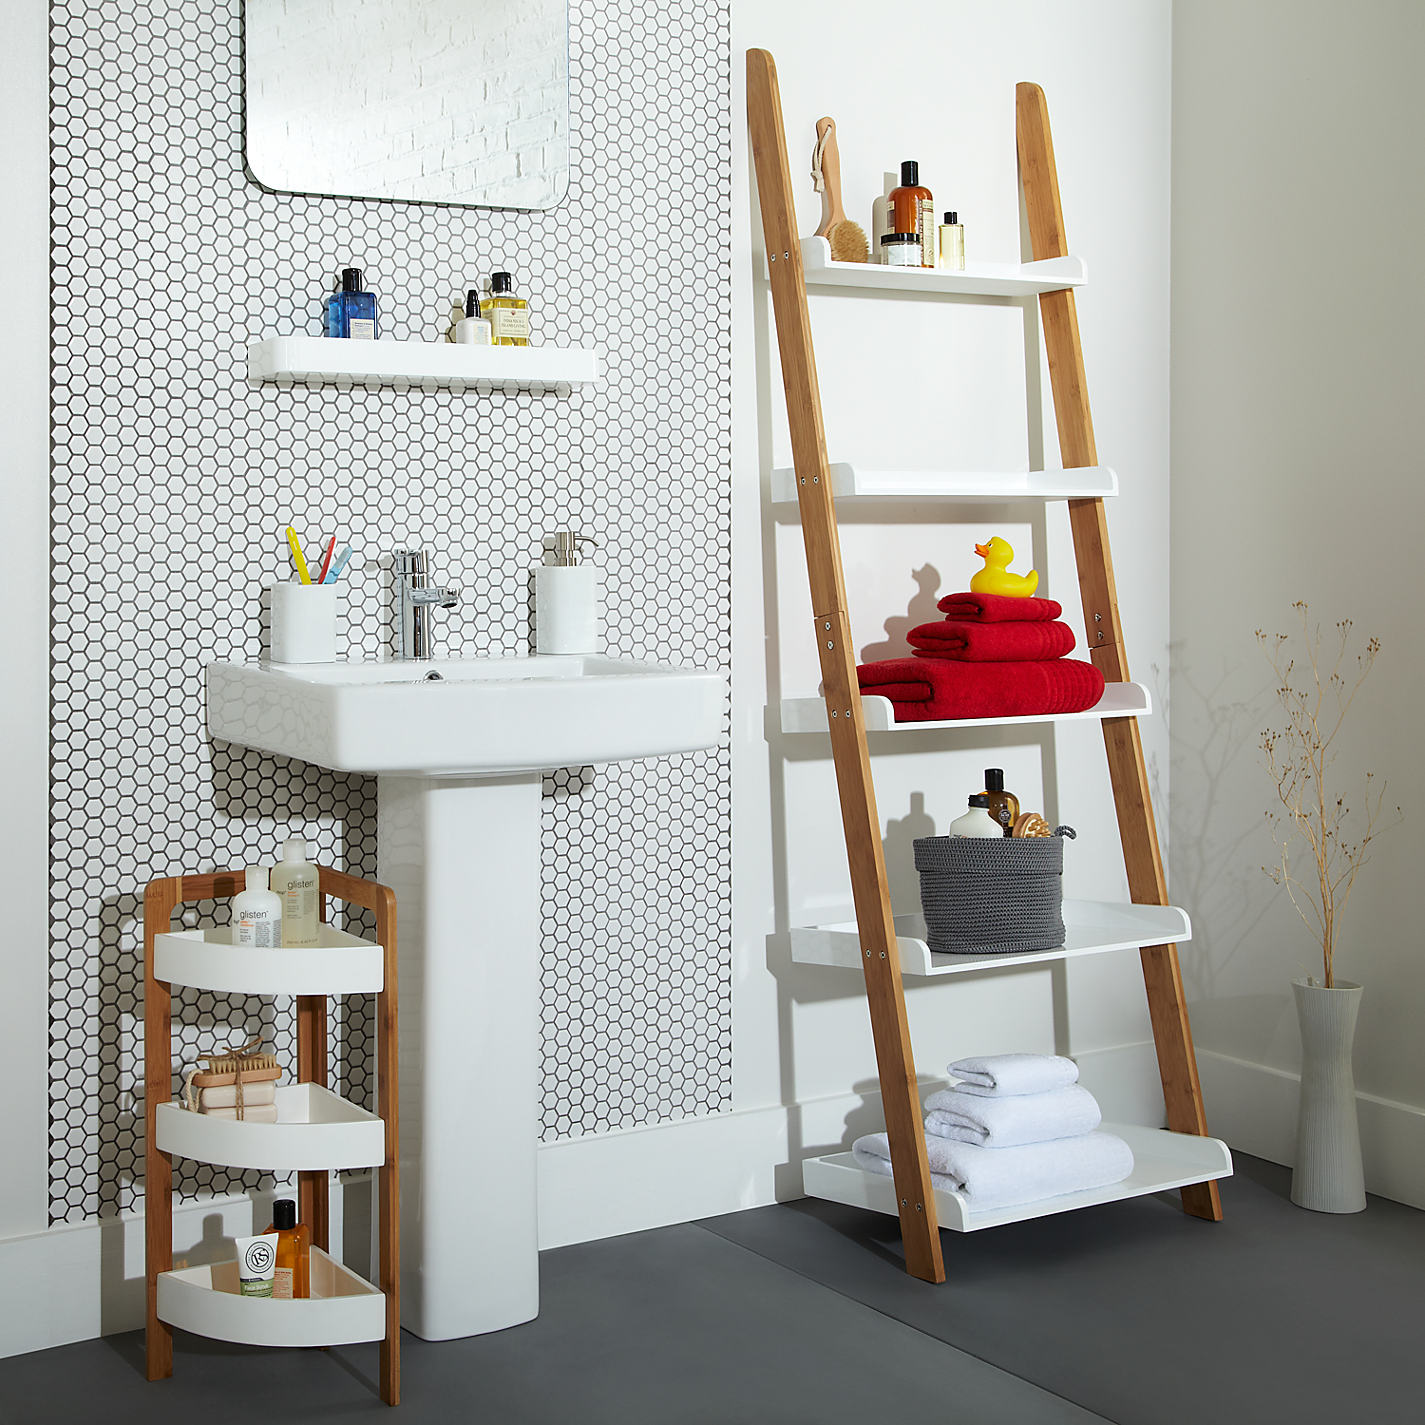 Cottage bathroom look add this bathroom ladder shelf for Idee deco murale originale